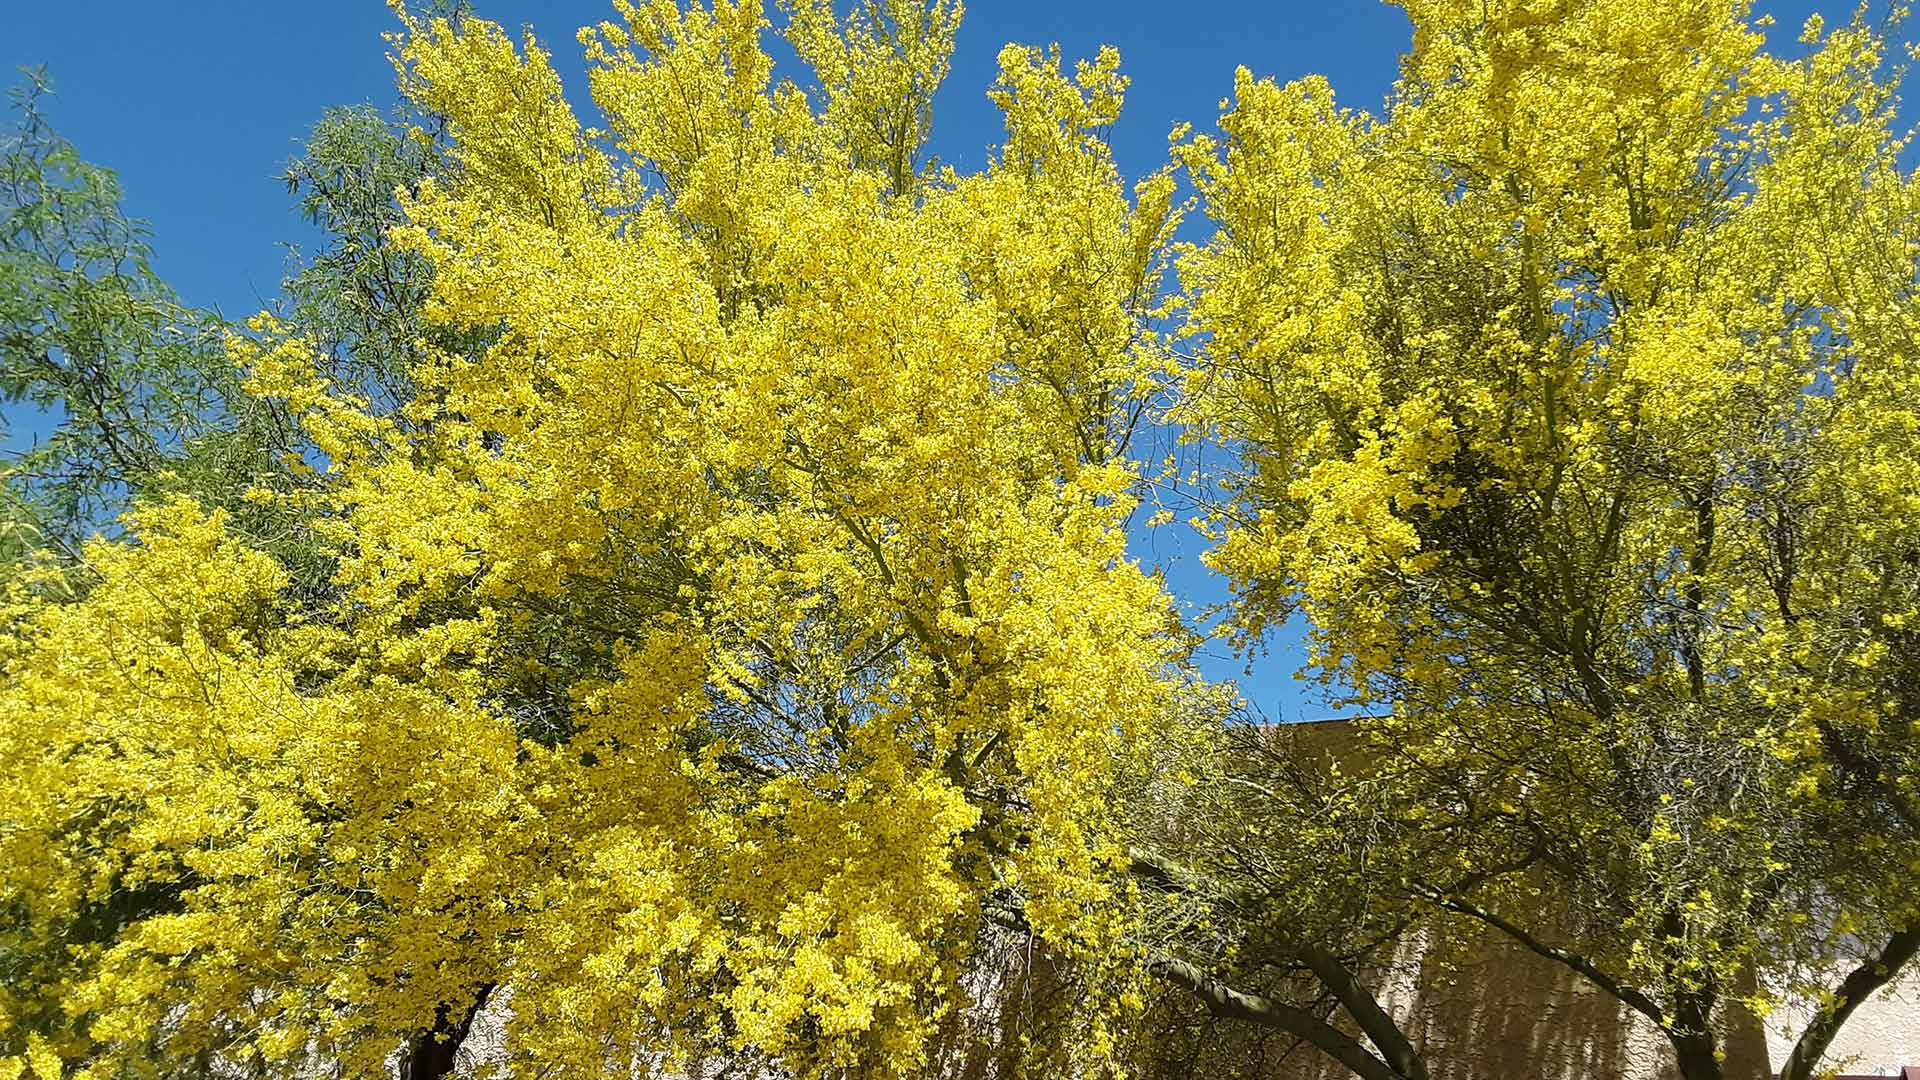 A blossoming palo verde tree.